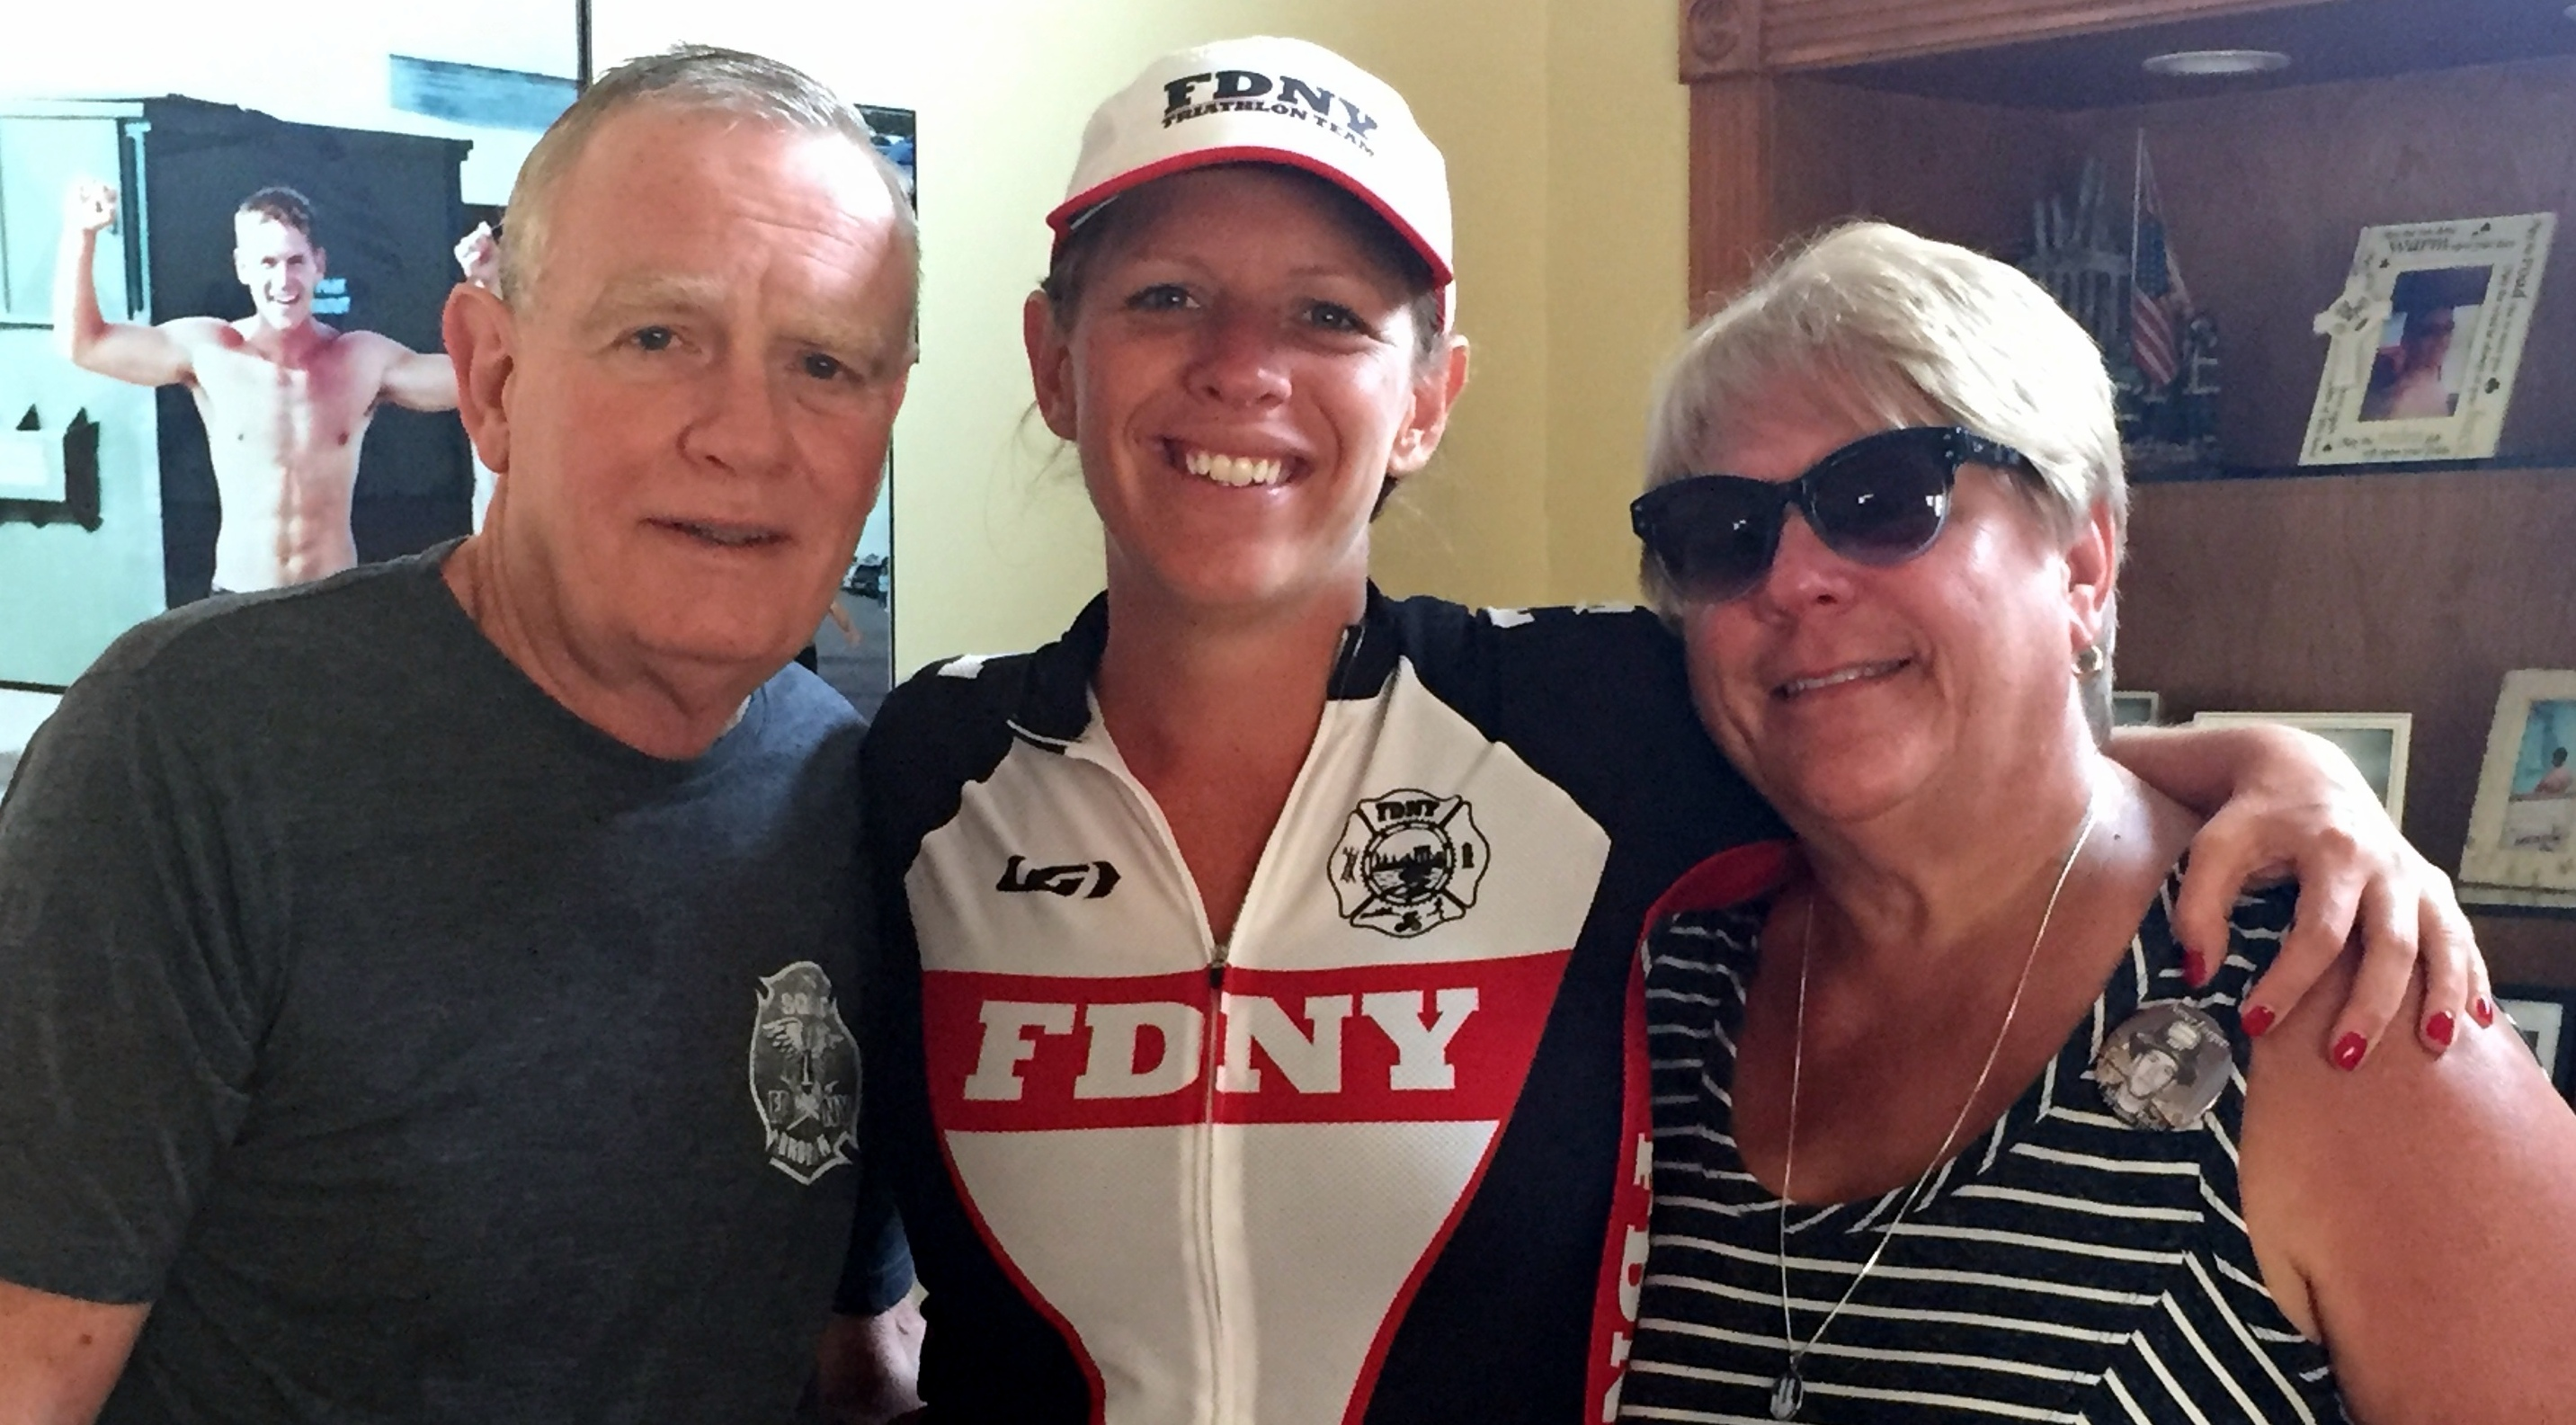 Faces of MS: Kerri Kiefer-Viverito - Well and Strong with MS